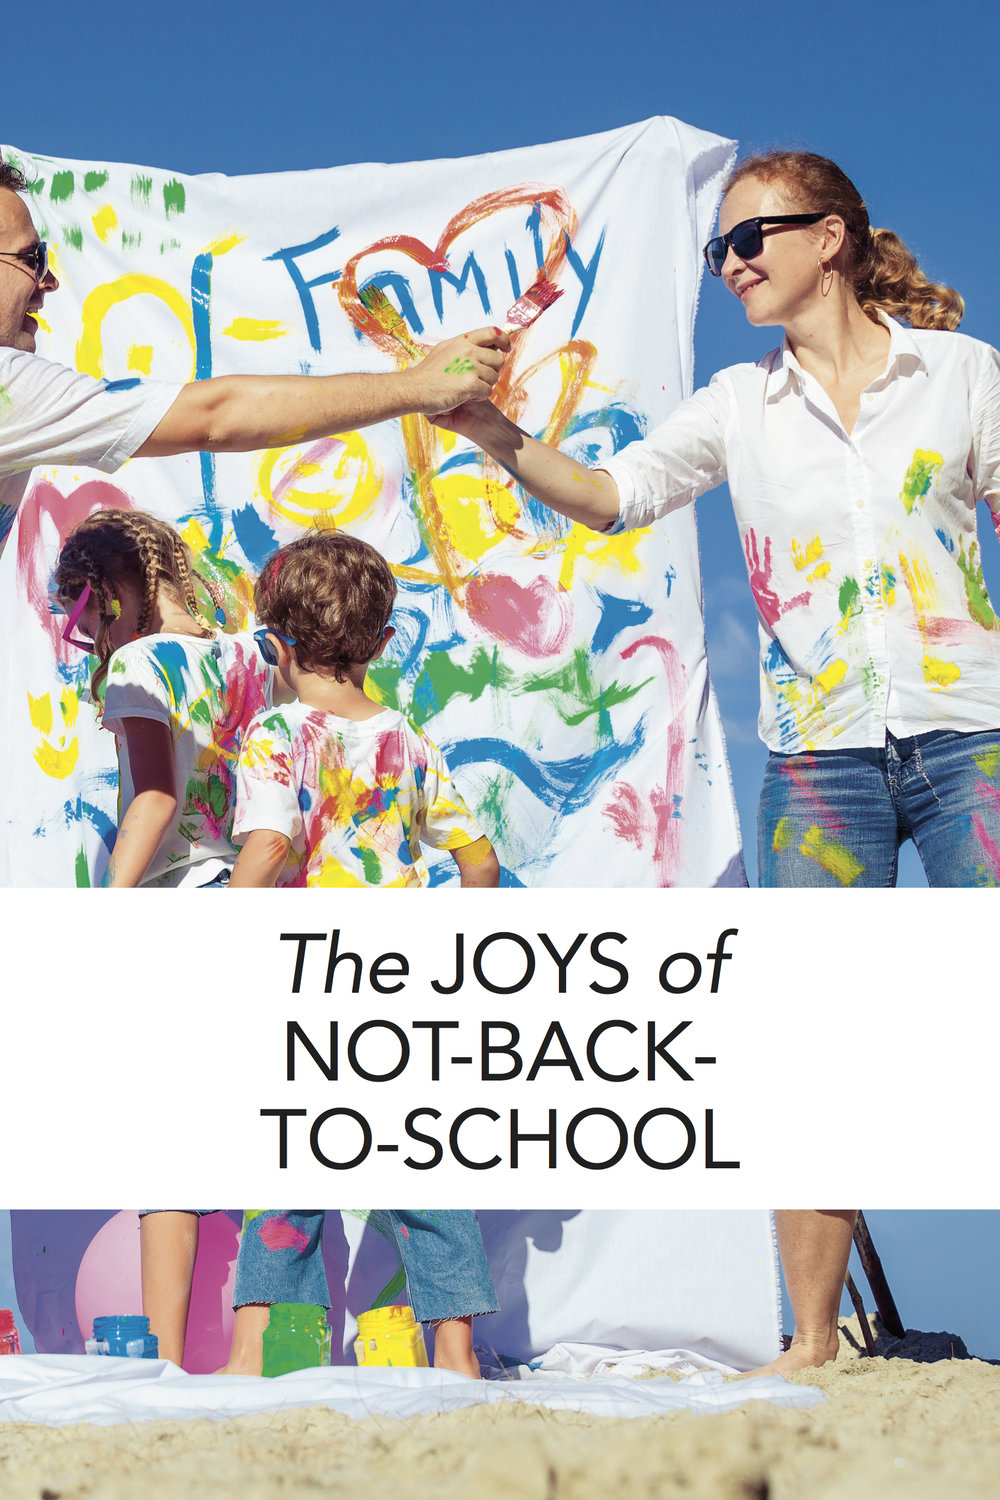 The joys of not-back-to-school: Or why I love being a homeschooler